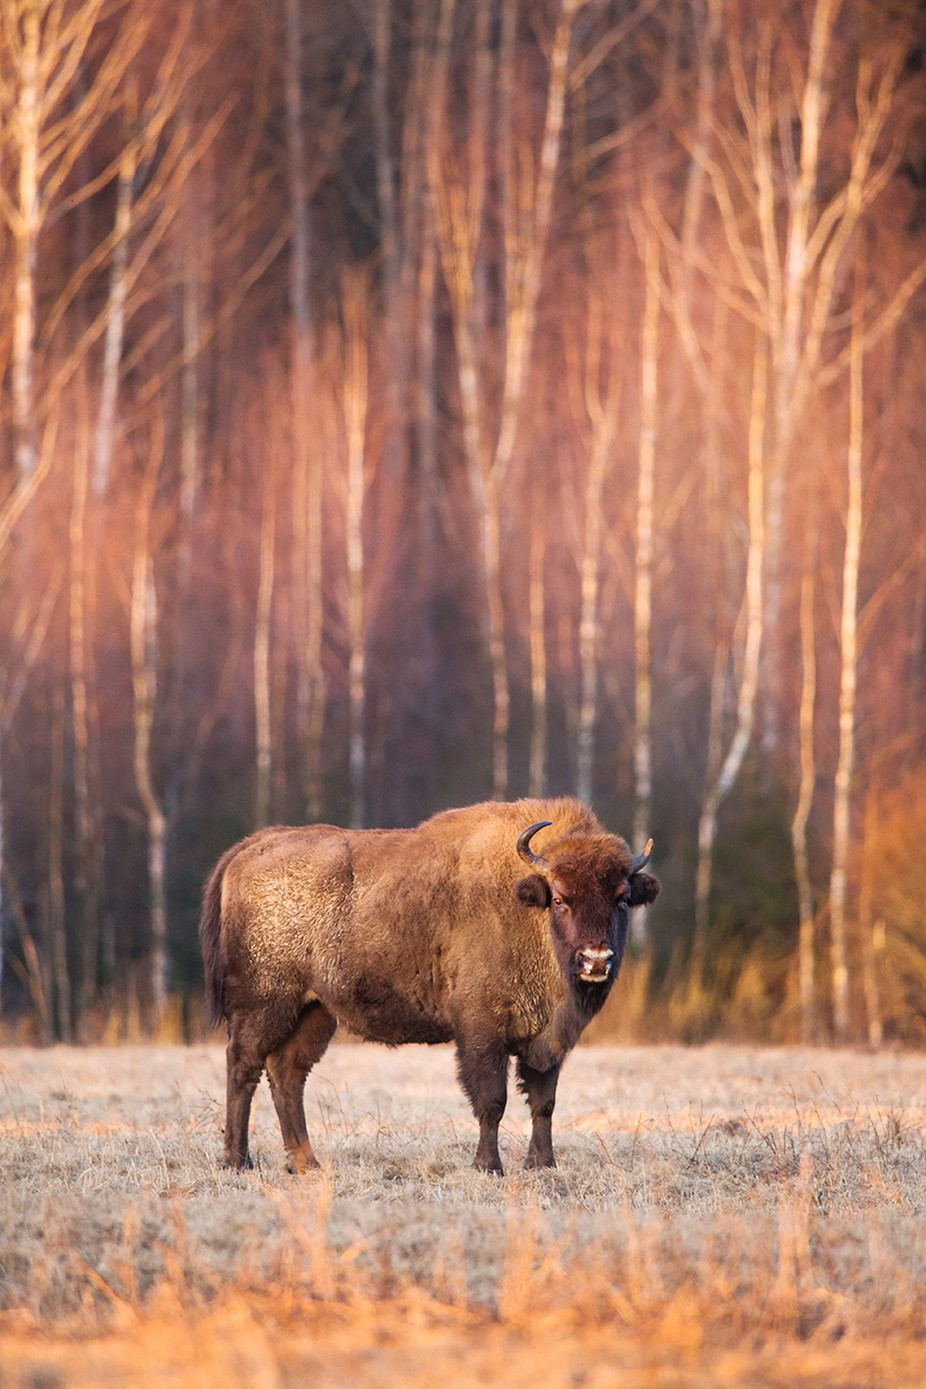 Bison in the rays of dawn by pavelmartsinchyk - Image Of The Month Photo Contest Vol 32